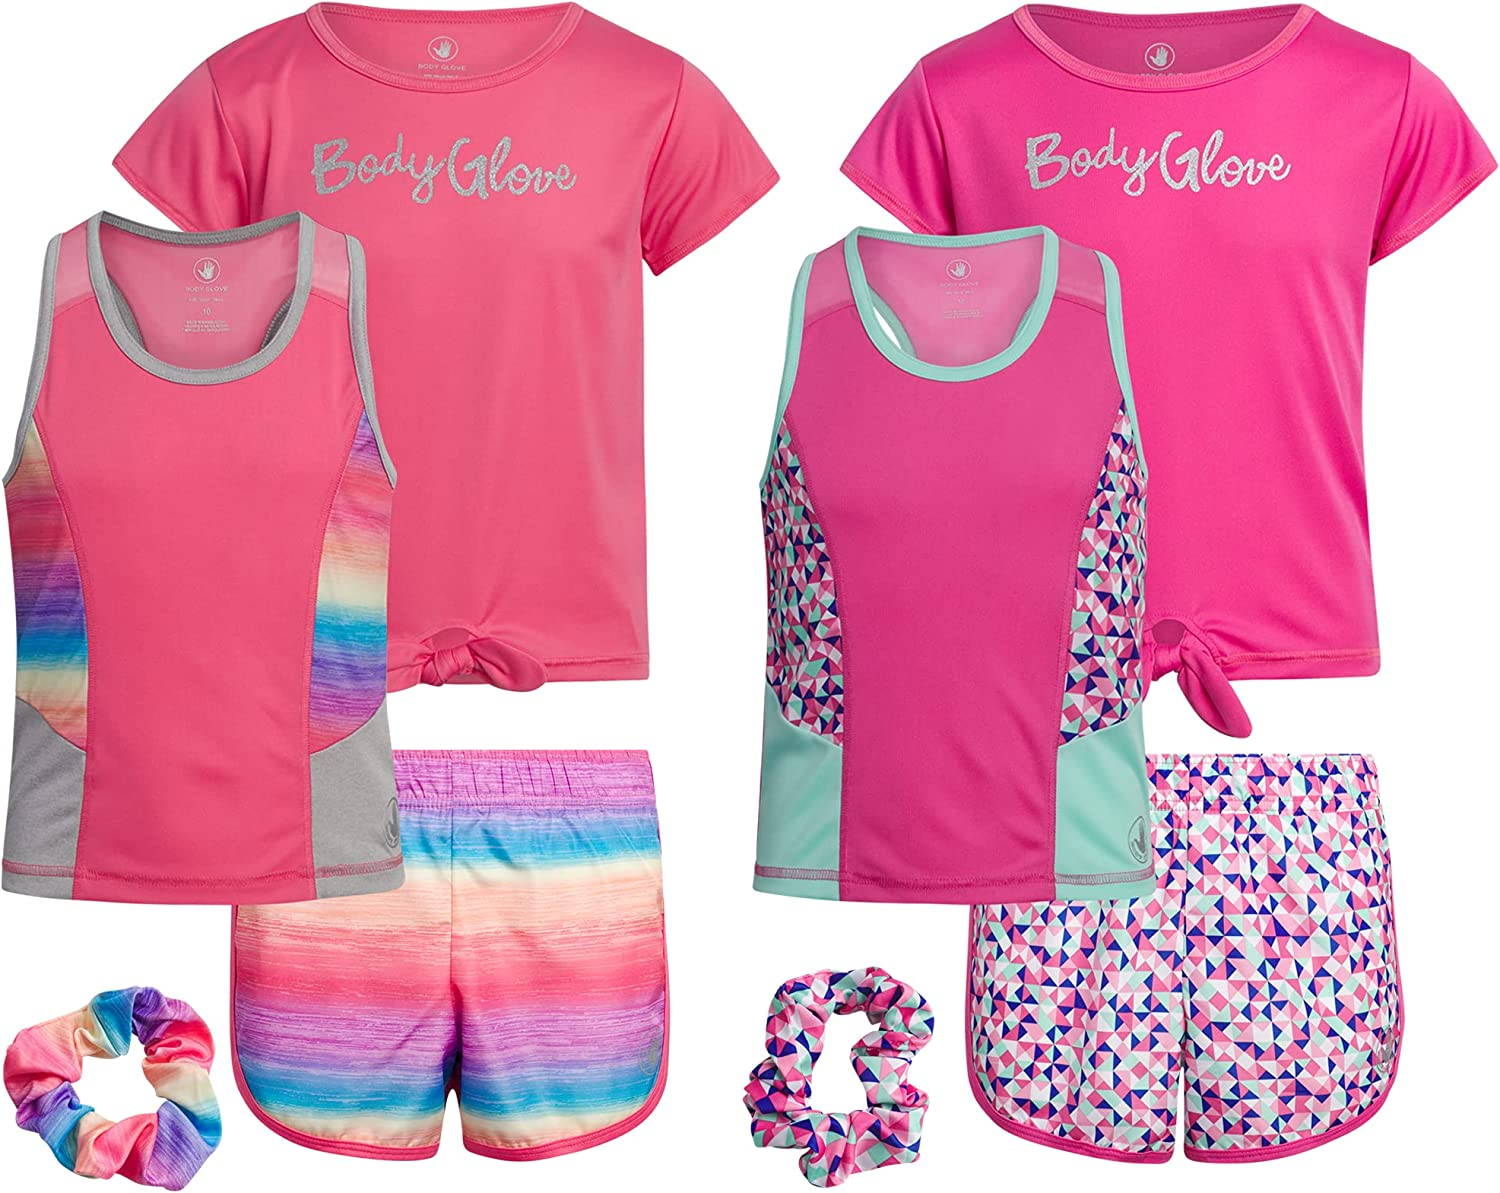 Body Glove Girls' Active Shorts Set T-Shirt Super sale period limited Tank - Top 6-Piece High material